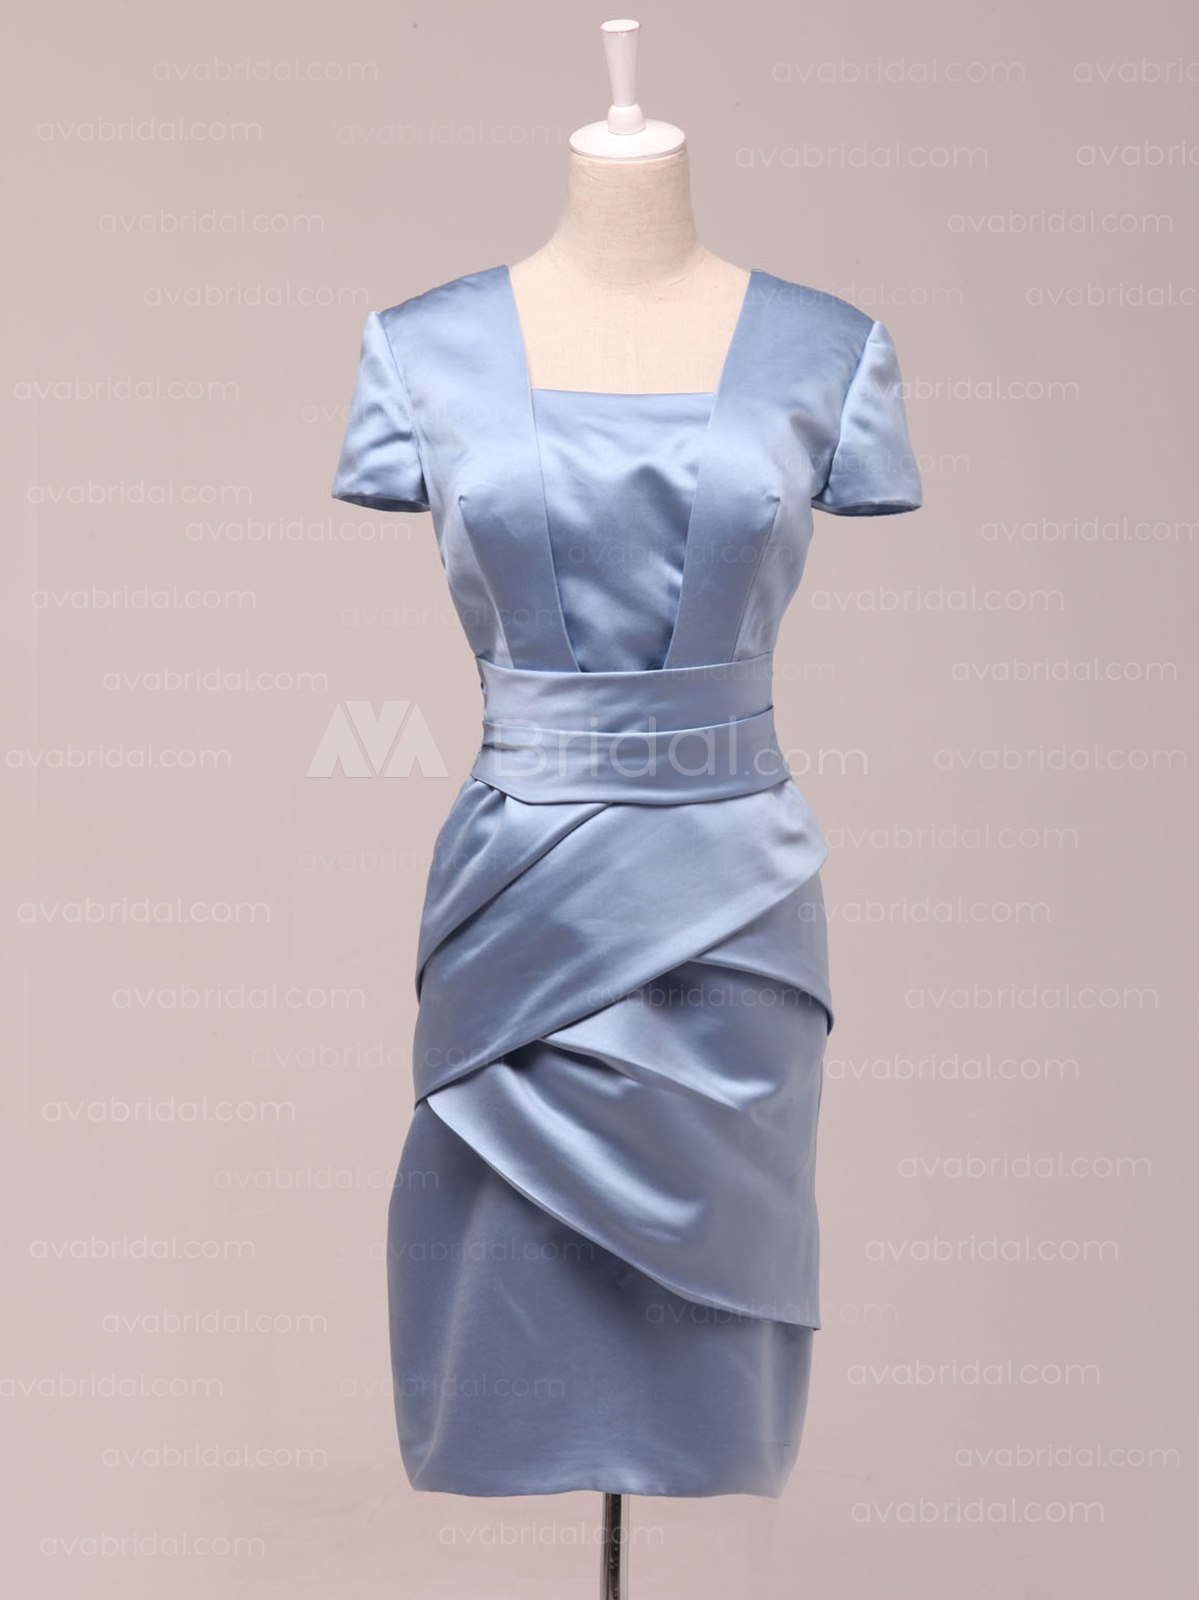 Formal Sheath Satin Bridesmaid Dress B460-Front